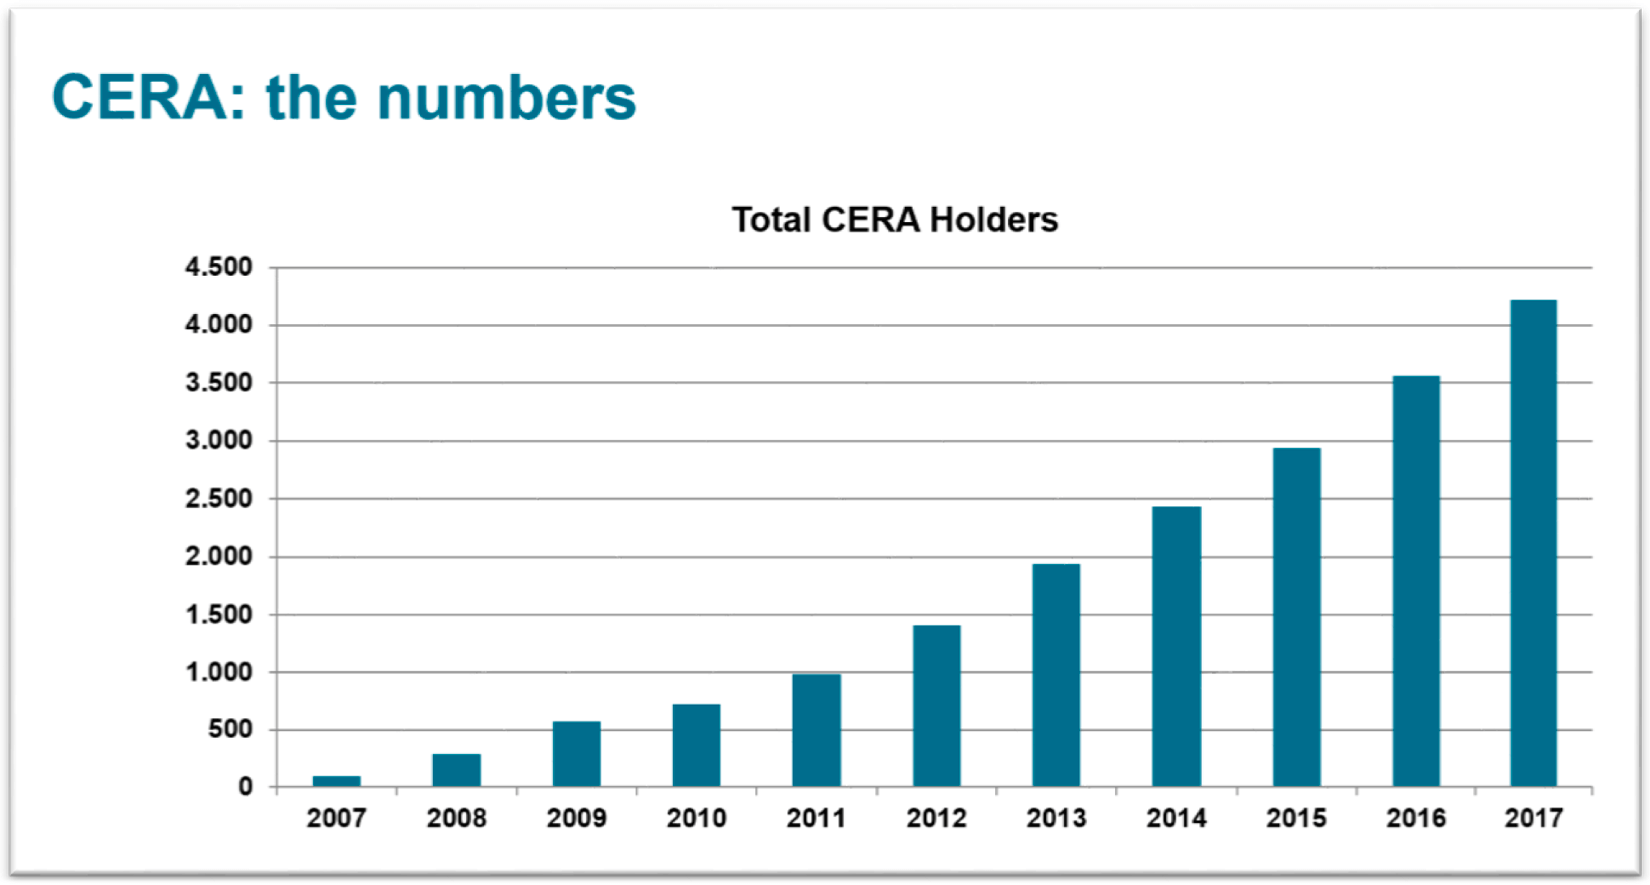 CERA: the numbers